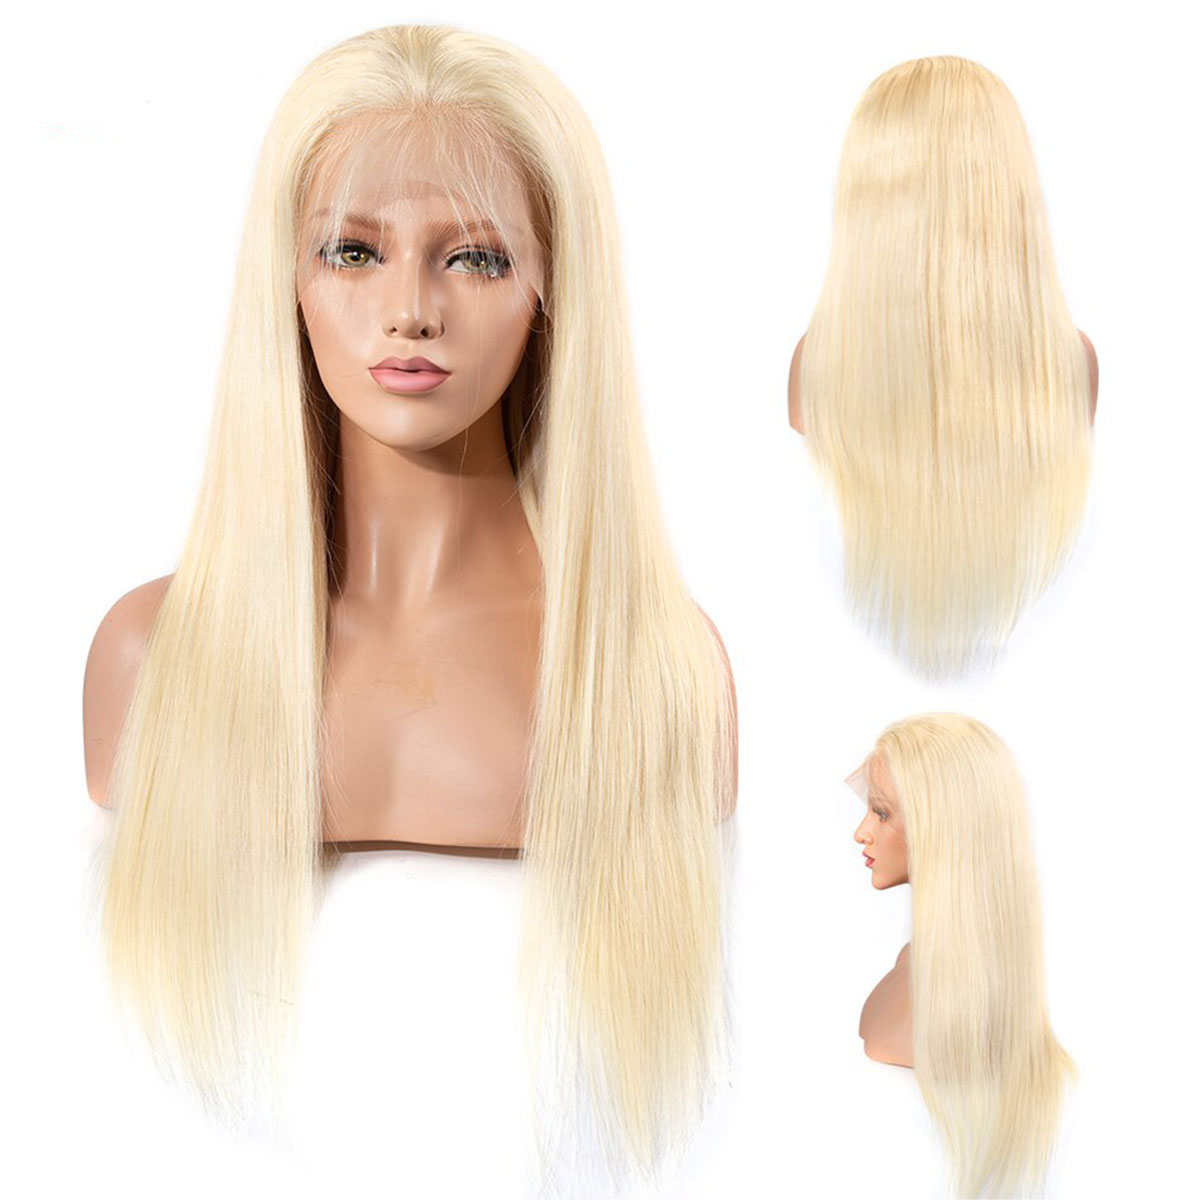 180% Density 613 Brazilian Straight Lace Front Wig